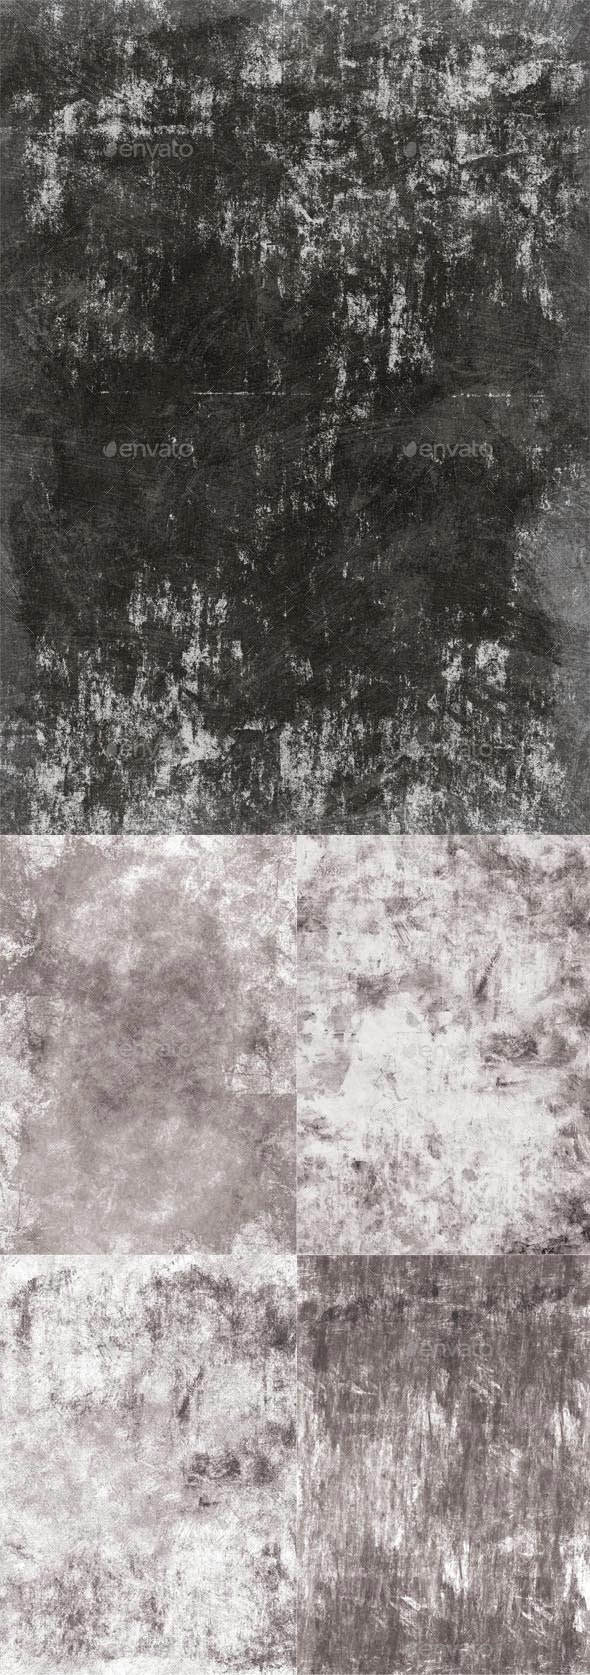 5 grungy textures - Industrial / Grunge Textures